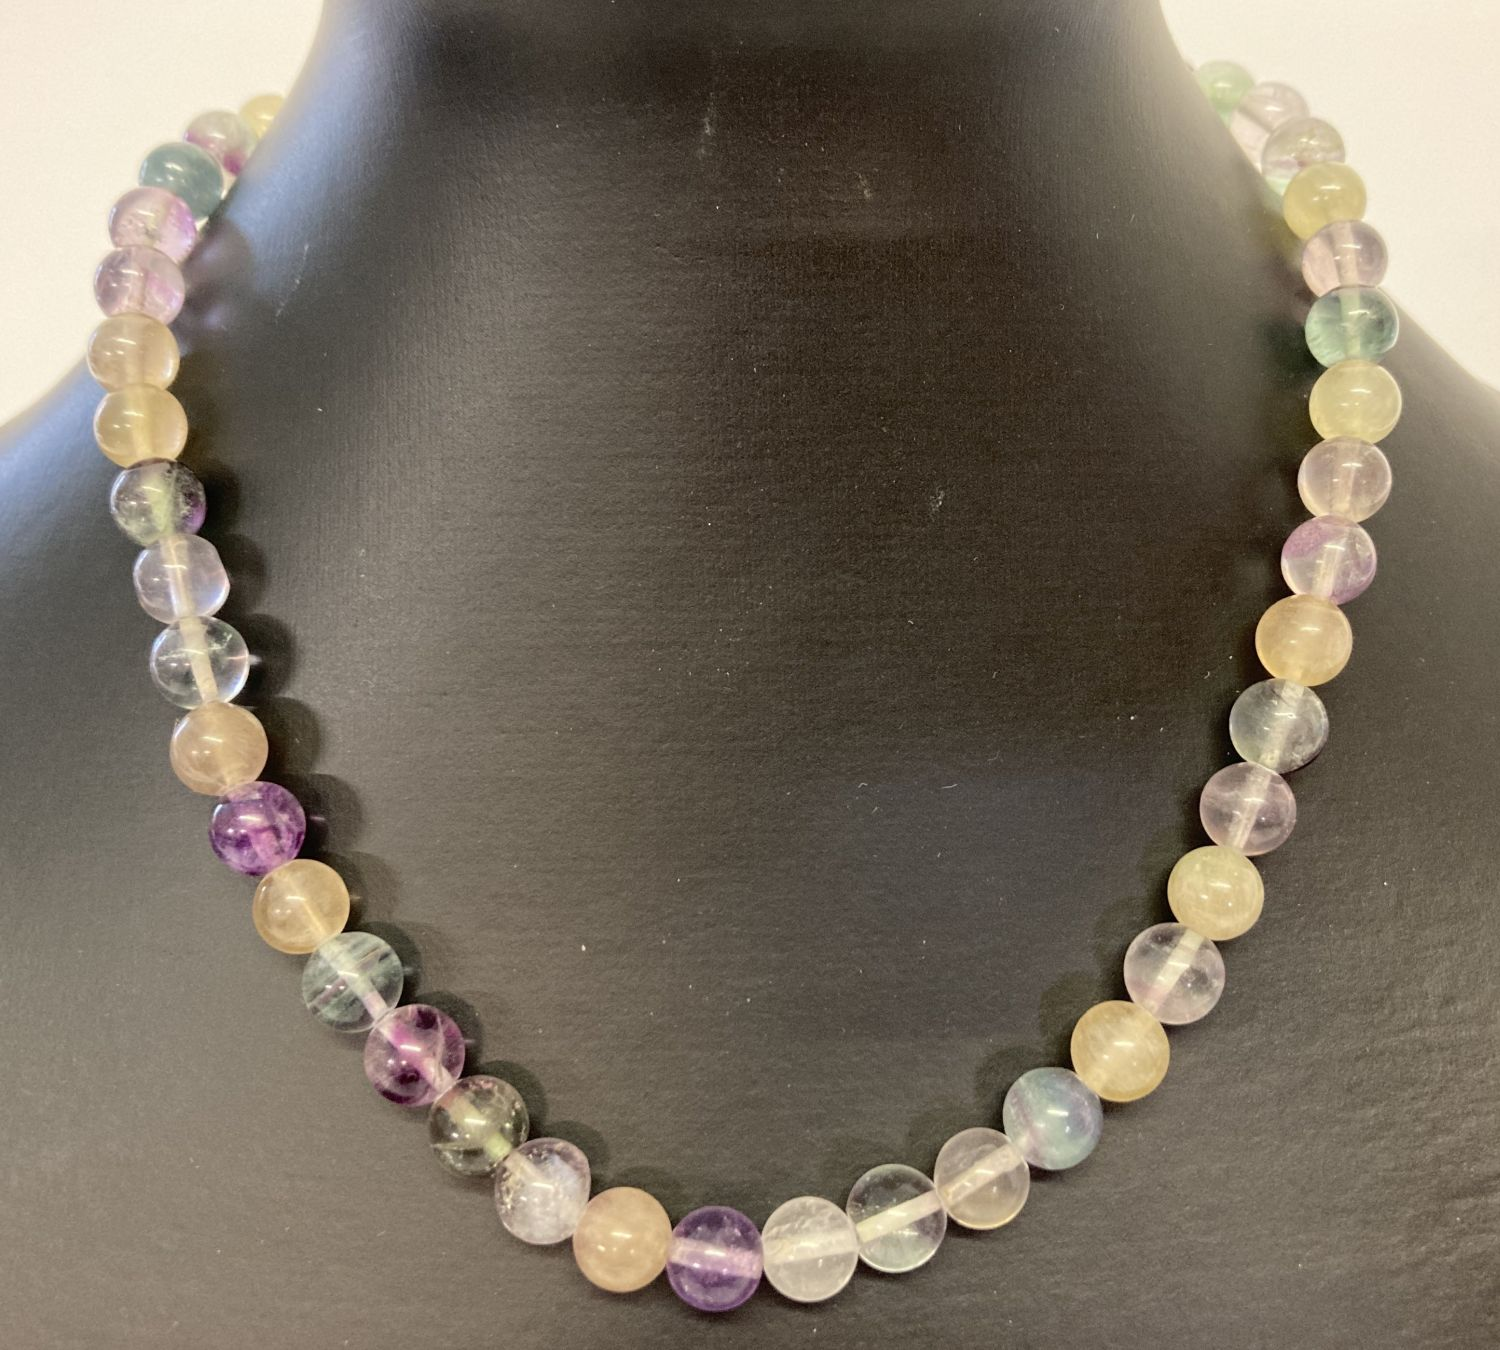 A fine, coloured fluorite beaded necklace with silver lobster claw clasp.